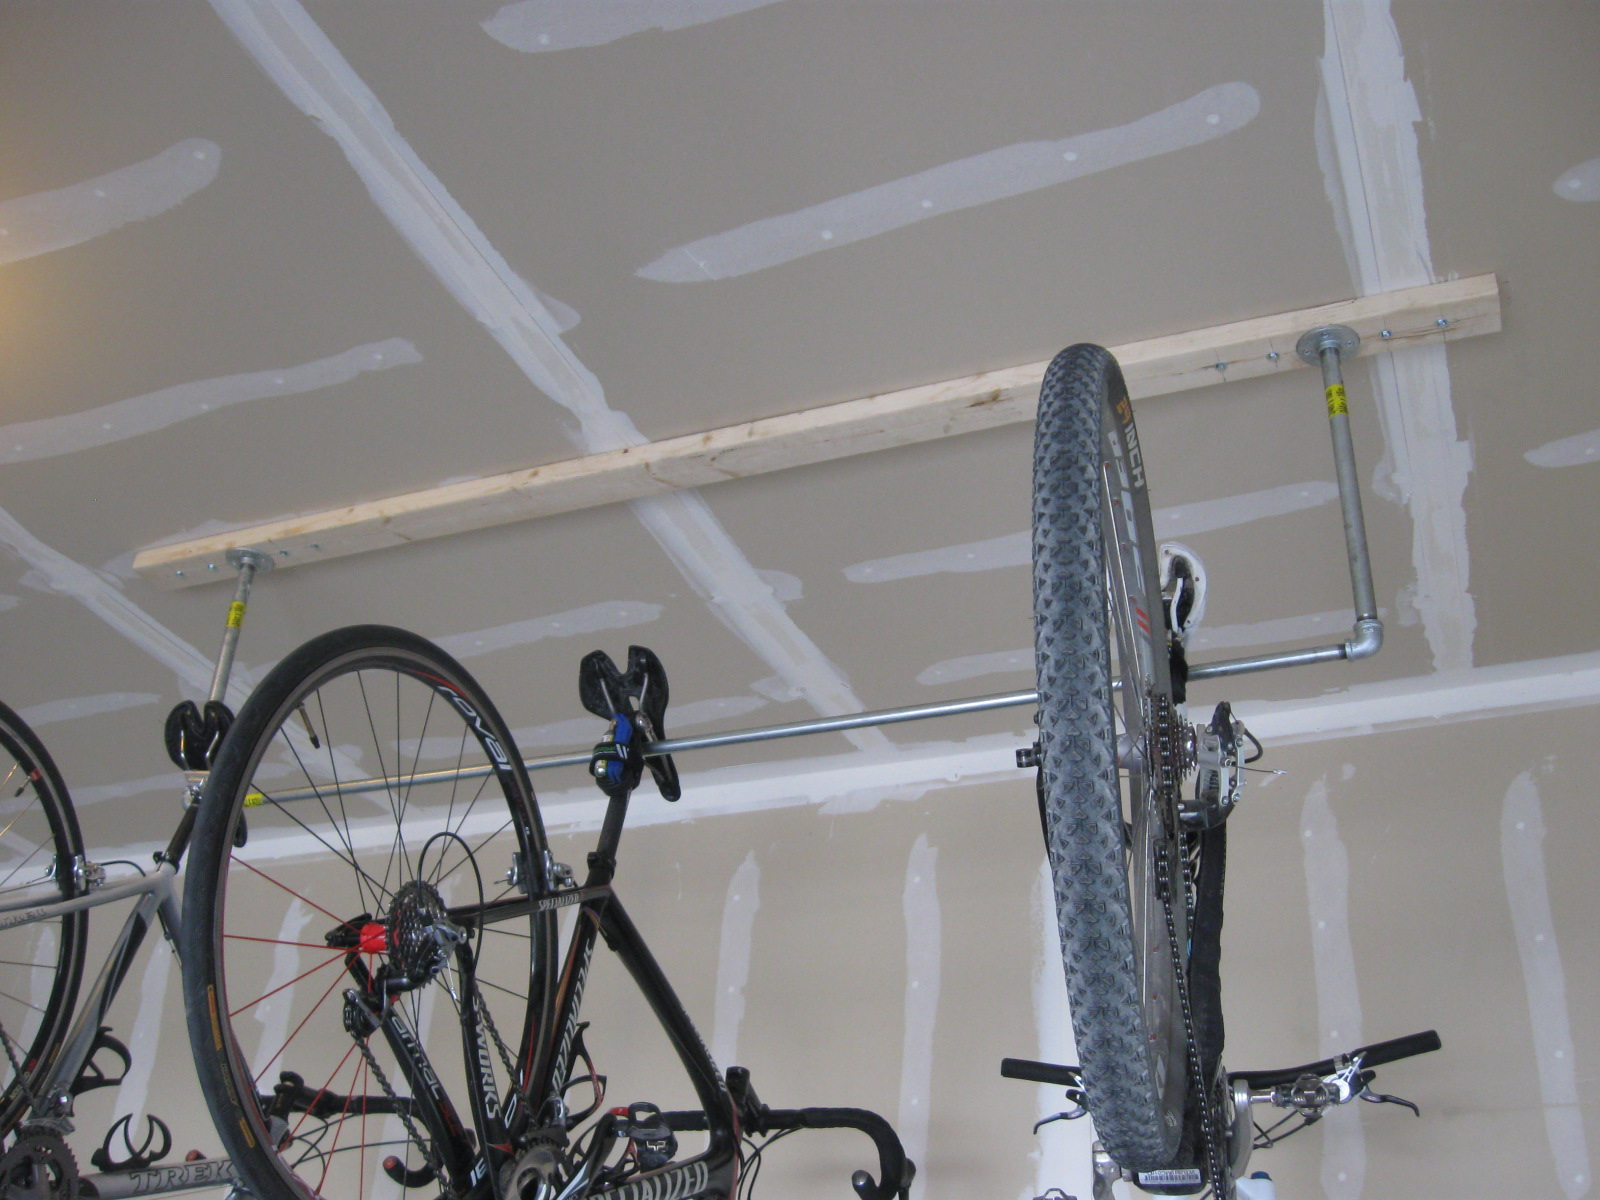 product hanging bike hang garagebhr bicycle bikes tidygarage rack garage in